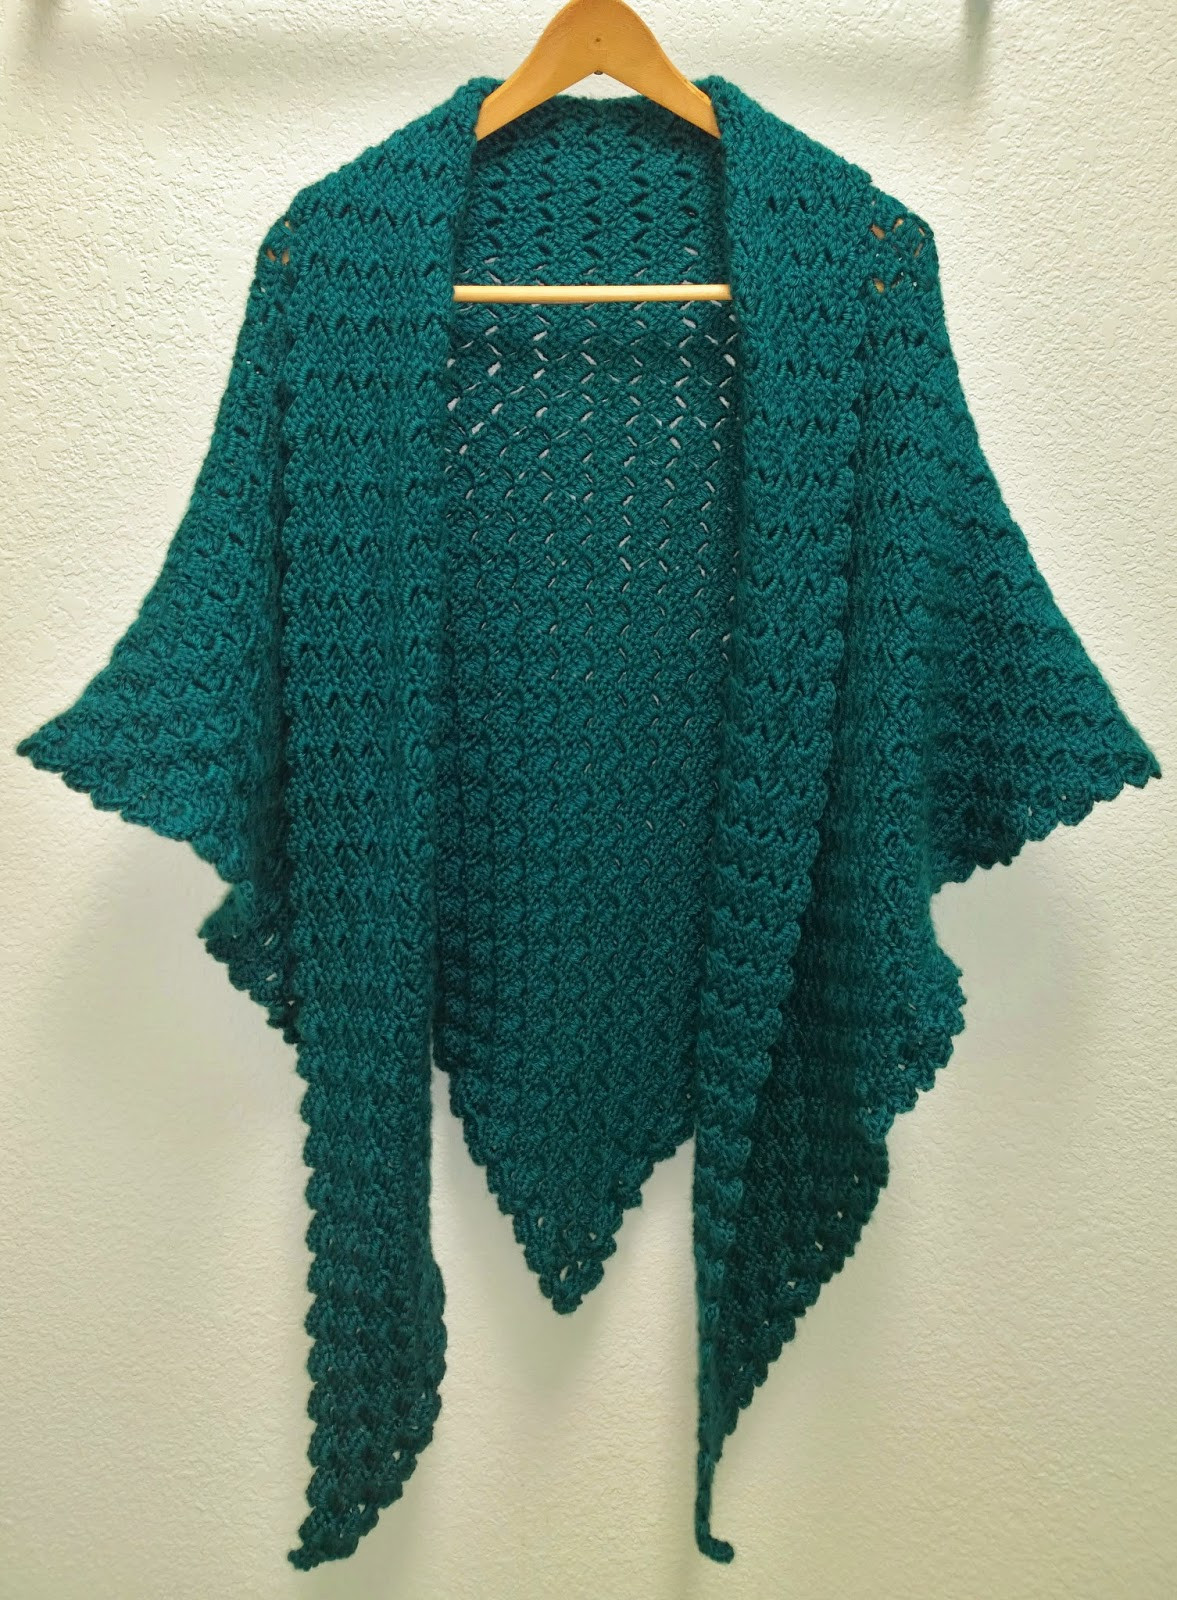 Crochet Triangle Shawl Inspirational N Sense Corner to Corner Triangle Shawl Of Brilliant 46 Pictures Crochet Triangle Shawl